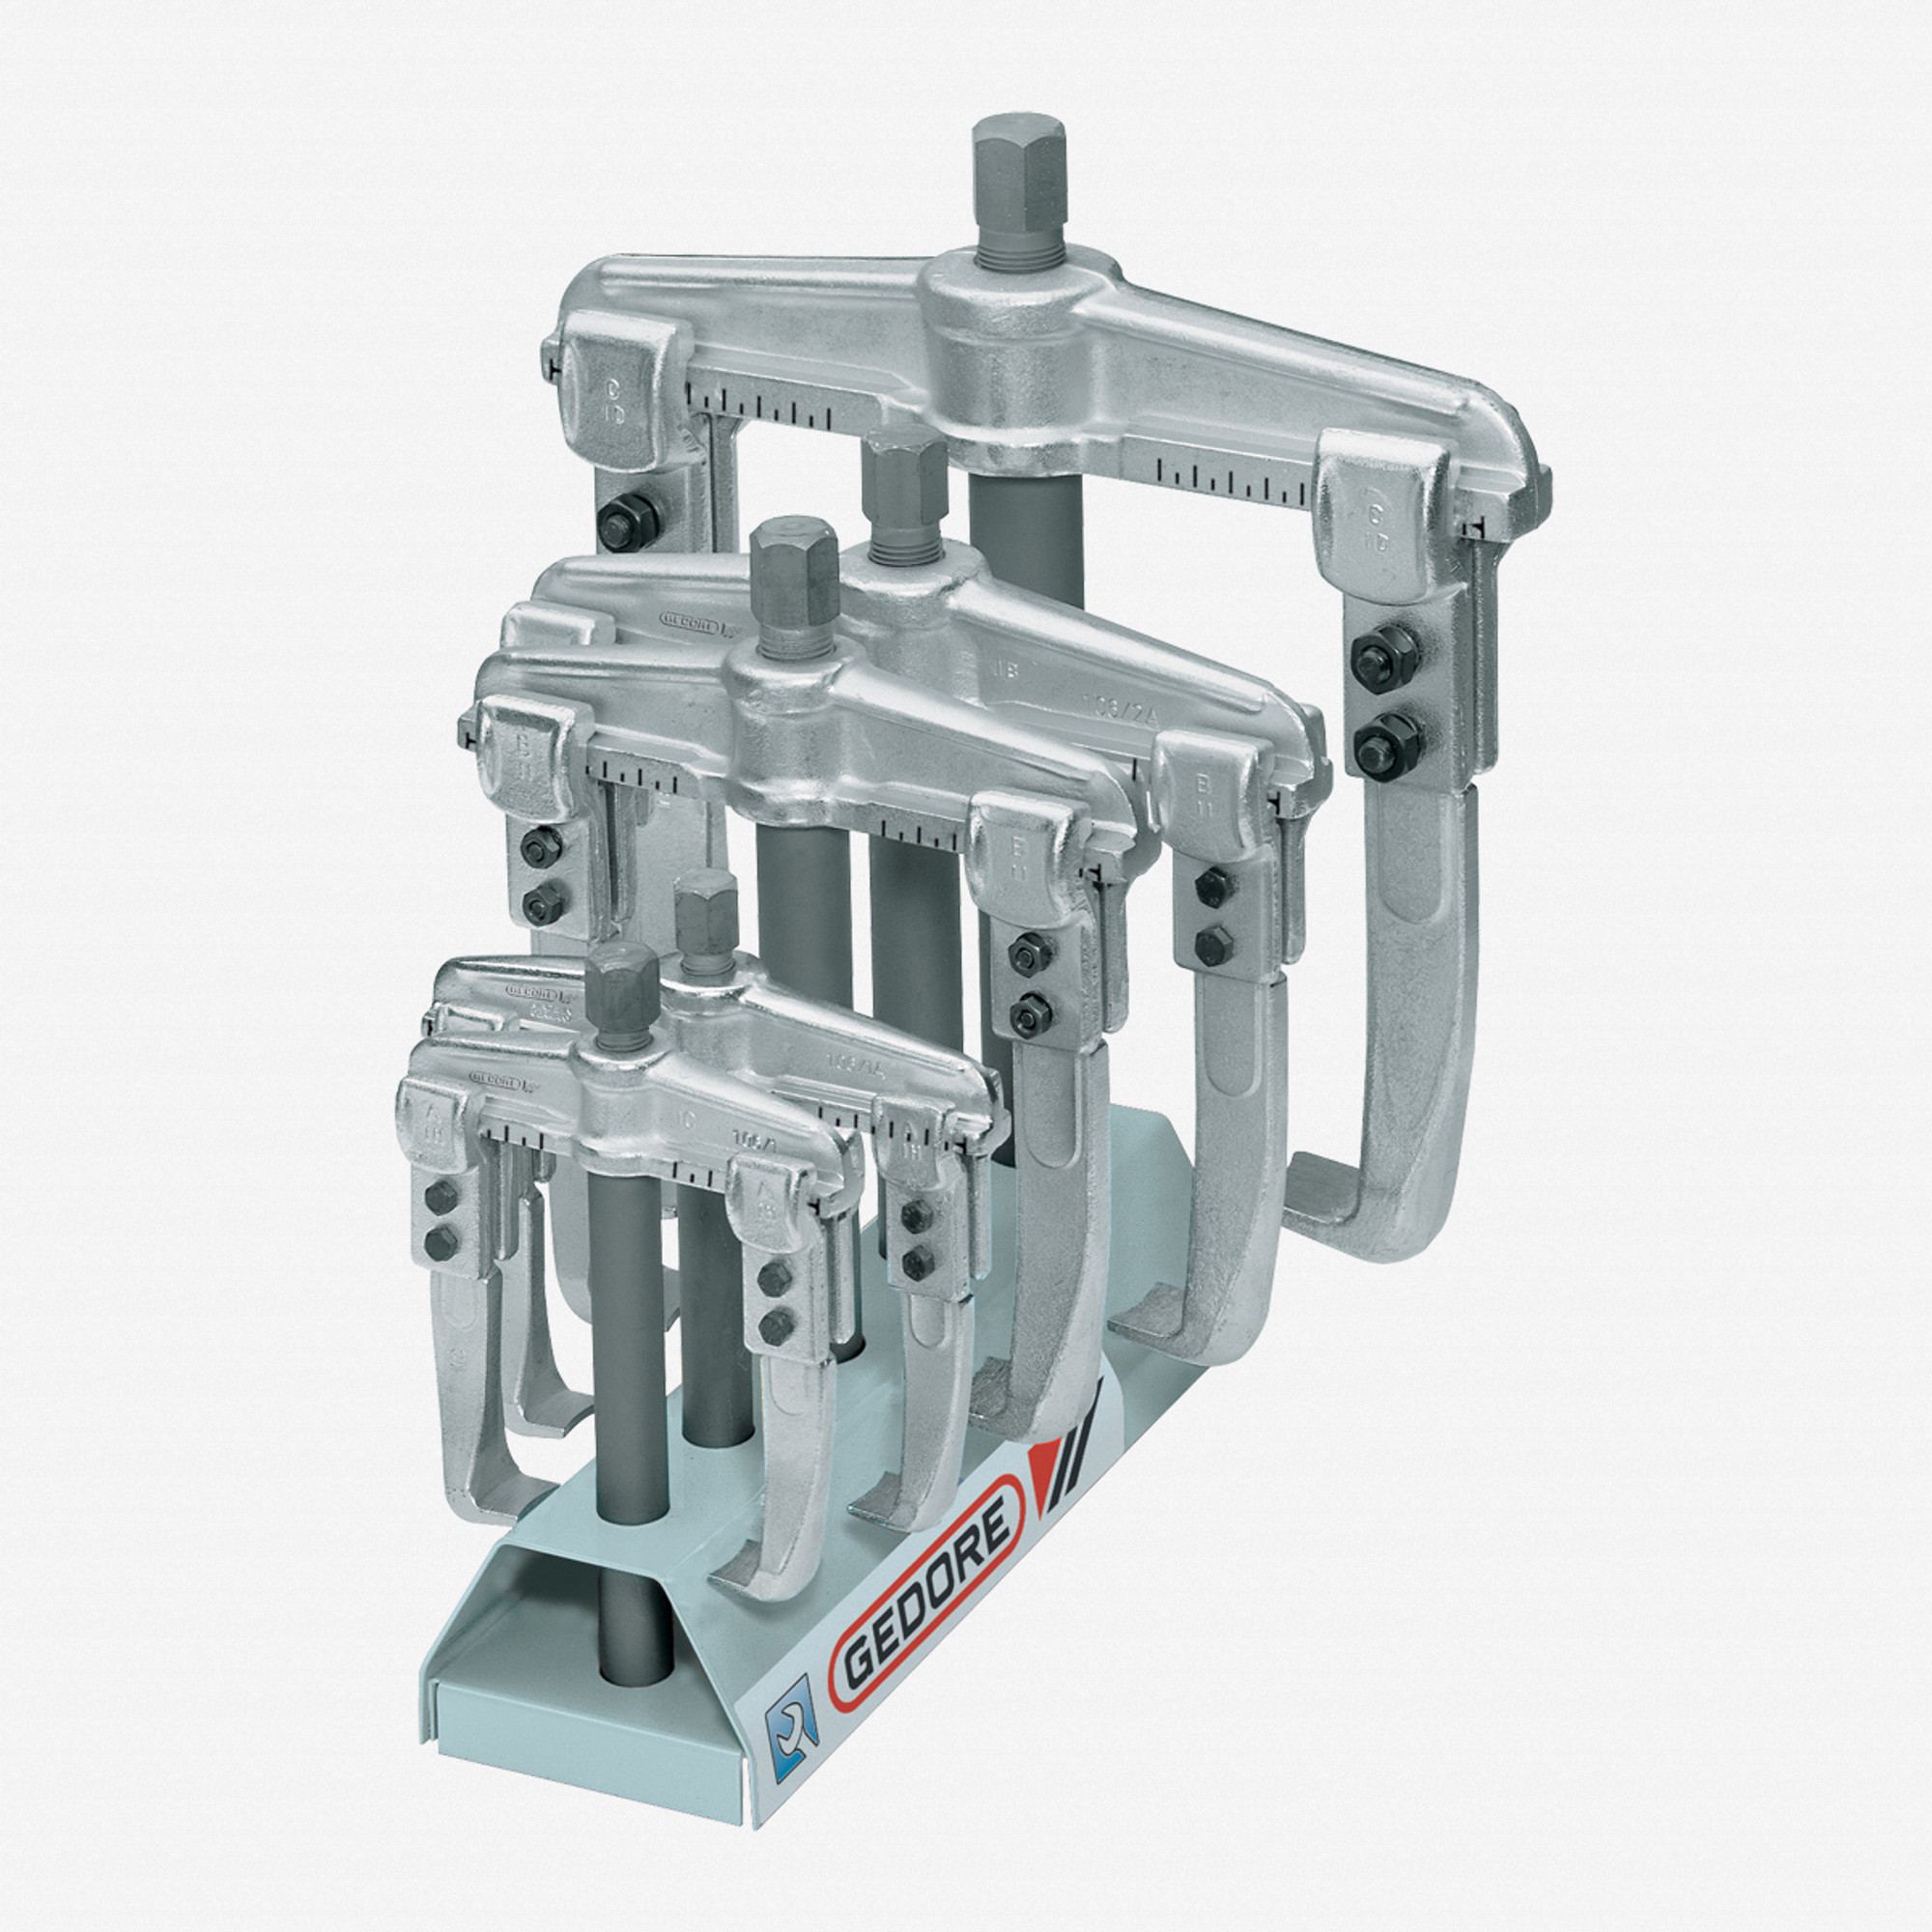 GEDORE 1.06//ST Puller Set with Display Stand 1.06//1-1.06//3